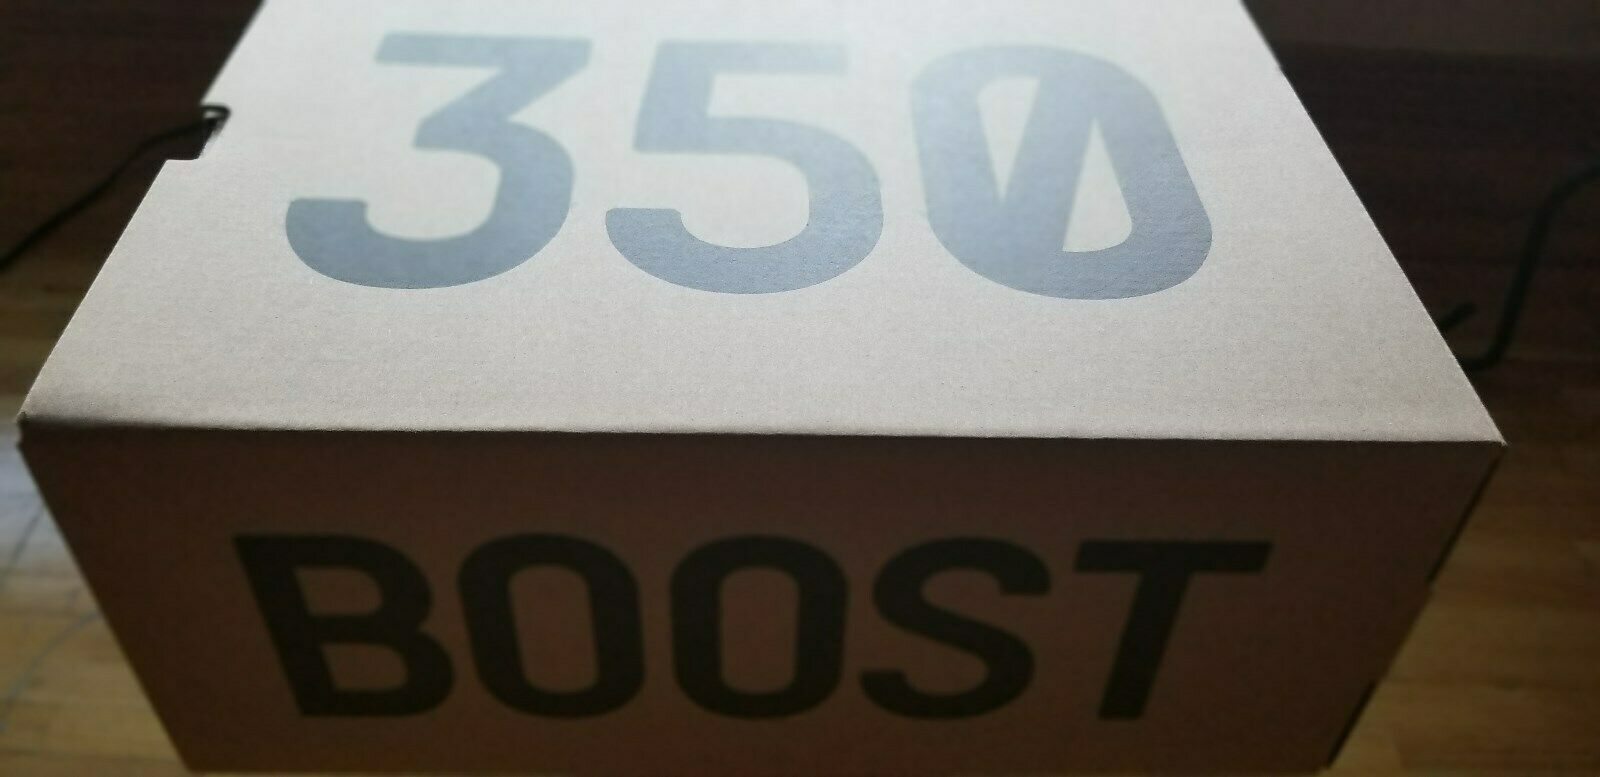 NEW ADIDAS YEEZY 350 V2 SEMI FROZEN YELLOW B37572 BRAND NEW IN THE BOX image 5